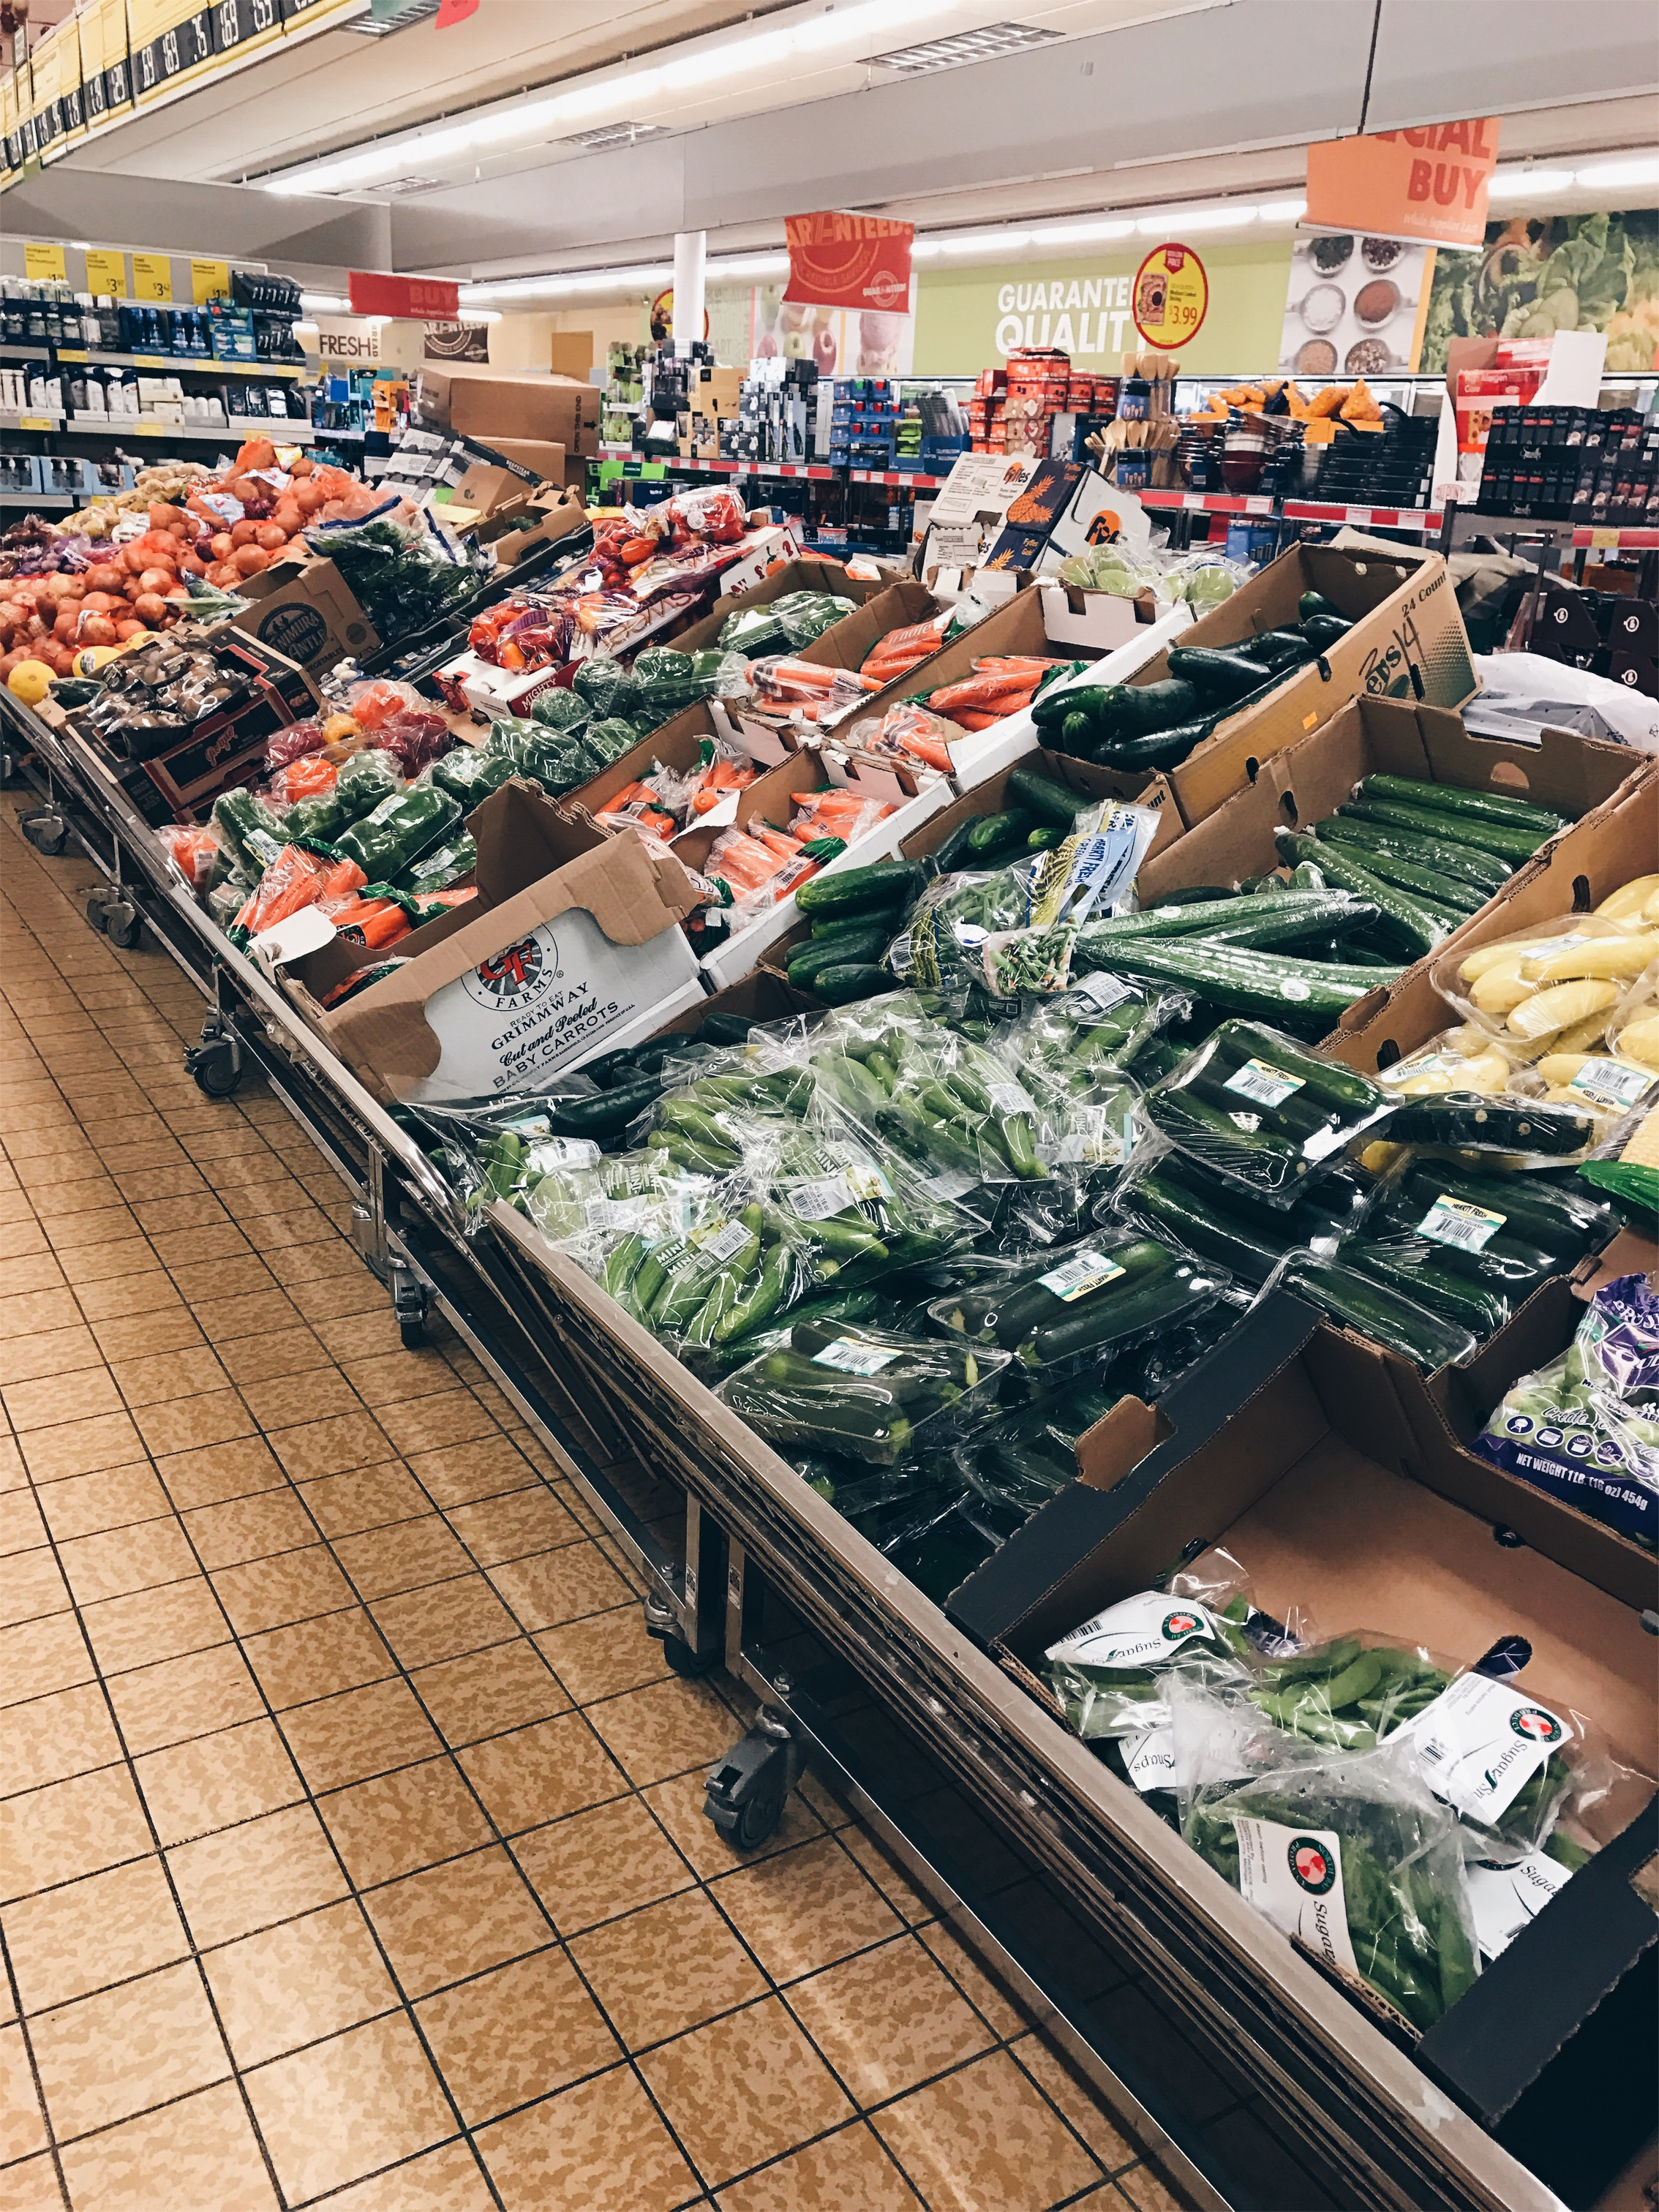 Get it!! They have amazing weekly sales which makes select produce items CHEAP. Aldi has really stepped it up the last year with bringing in a lot more organic produce. When I first started shopping at Aldi I was not impressed with their produce. I would come home with several hidden rotten items. And now i can walk in with my list 95% of the time items are in great condition.